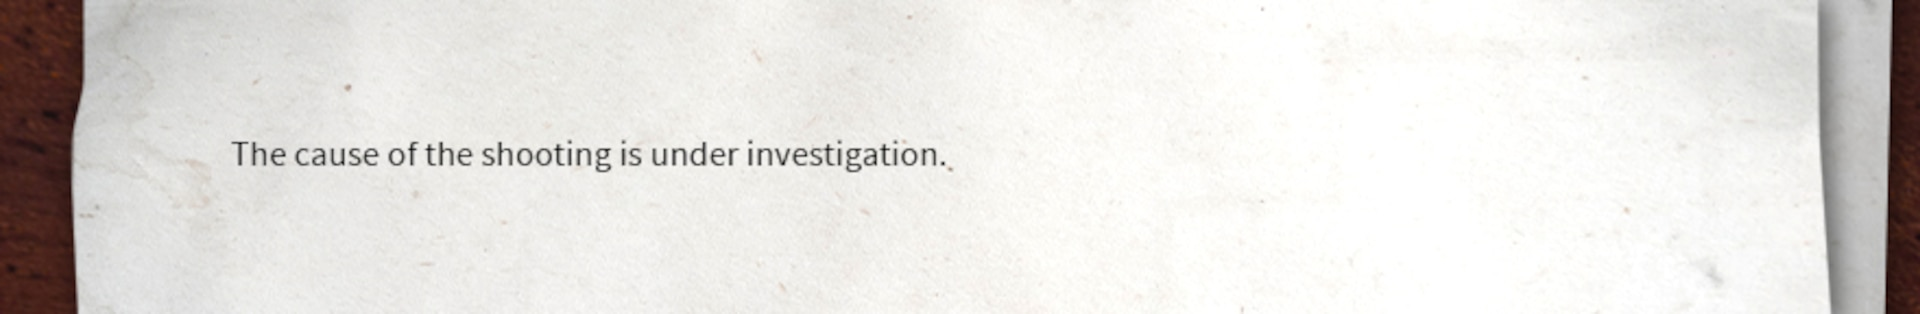 Writing sample of an investigation statement: The cause of the shooting is under investigation.